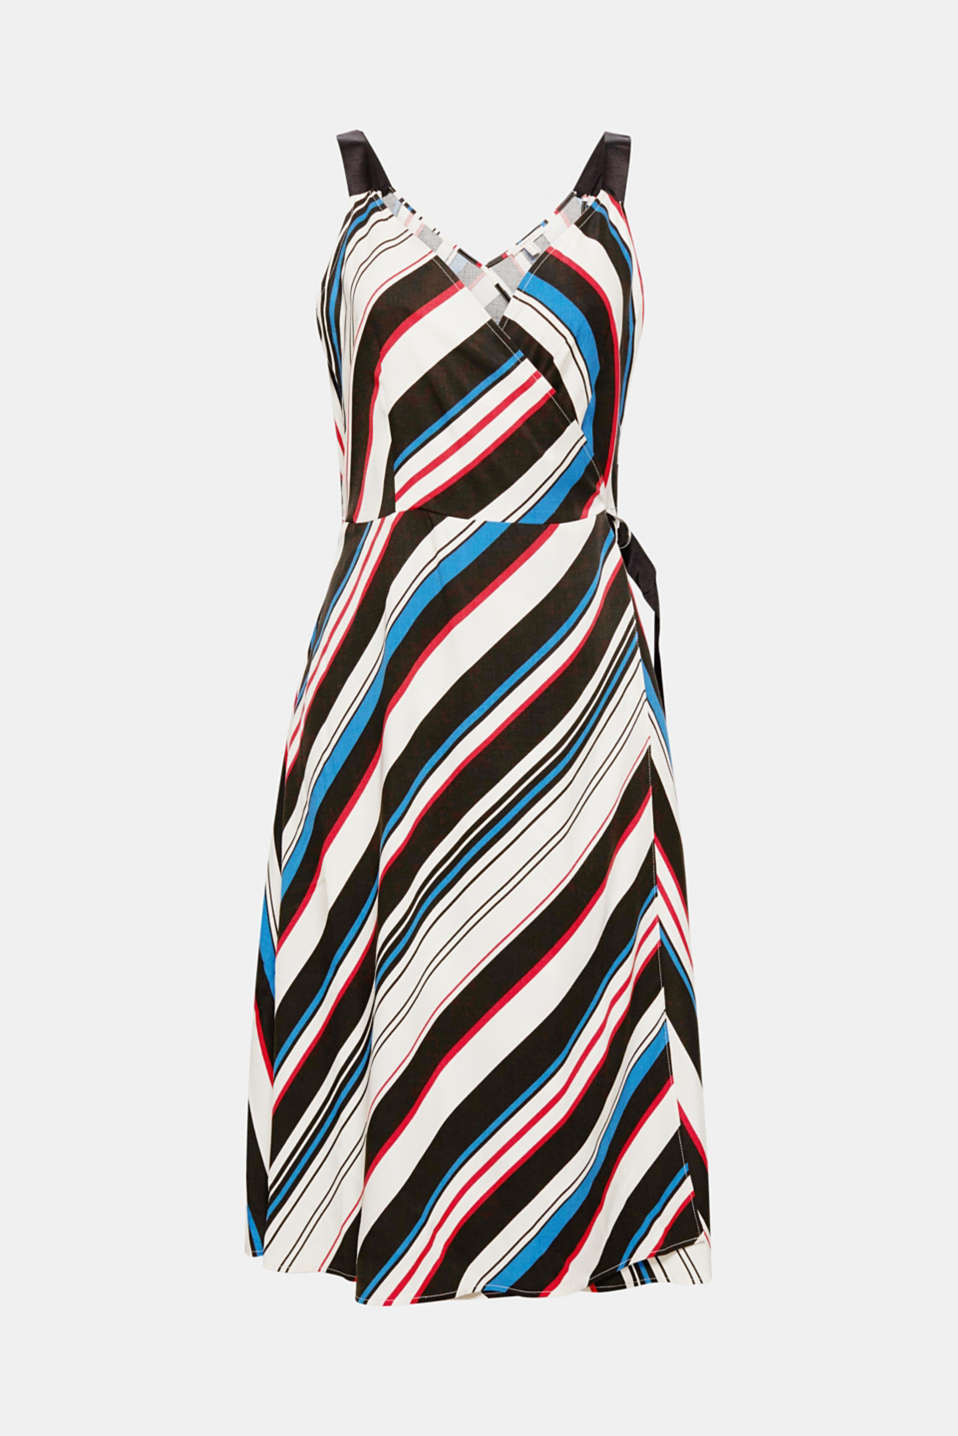 Do you want to encourage summer to come around? Then you can do just that in this stylish dress with diagonal stripes, a trendy wrap-over effect and wide grosgrain ribbon straps!